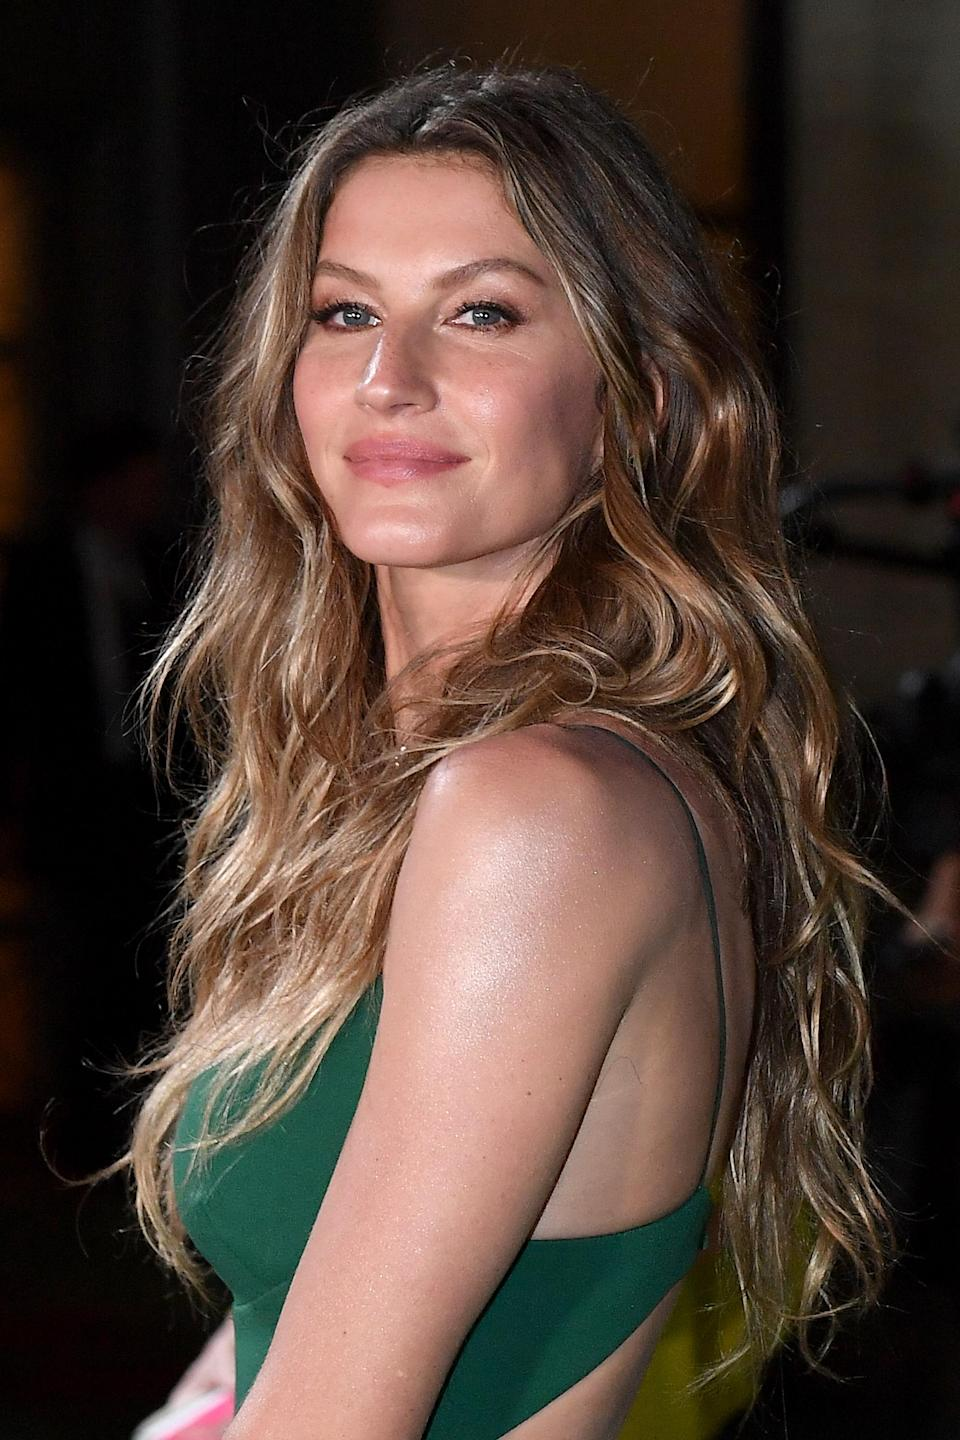 Gisele Bündchen opens up about her mental health in her new memoir. (Photo: Jacopo Raule/Getty Images)